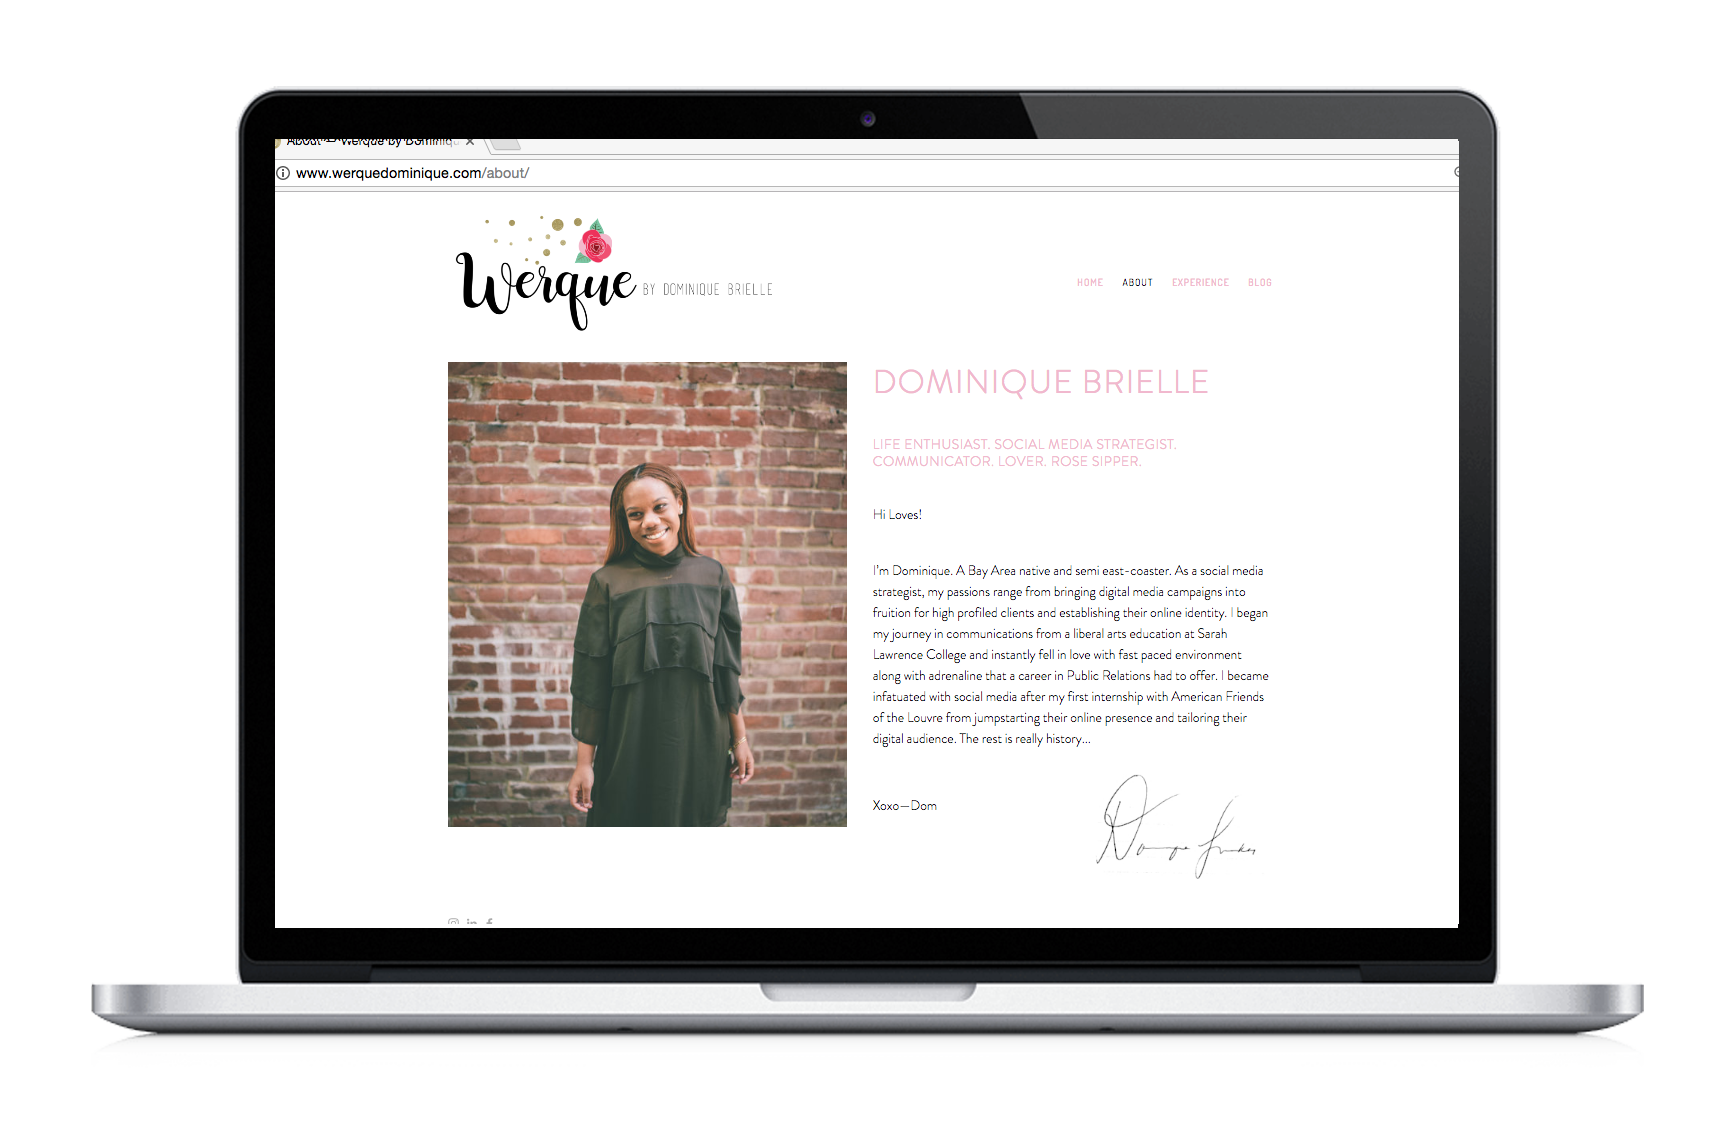 Werque Dominique - Website Mockup 5.5.png